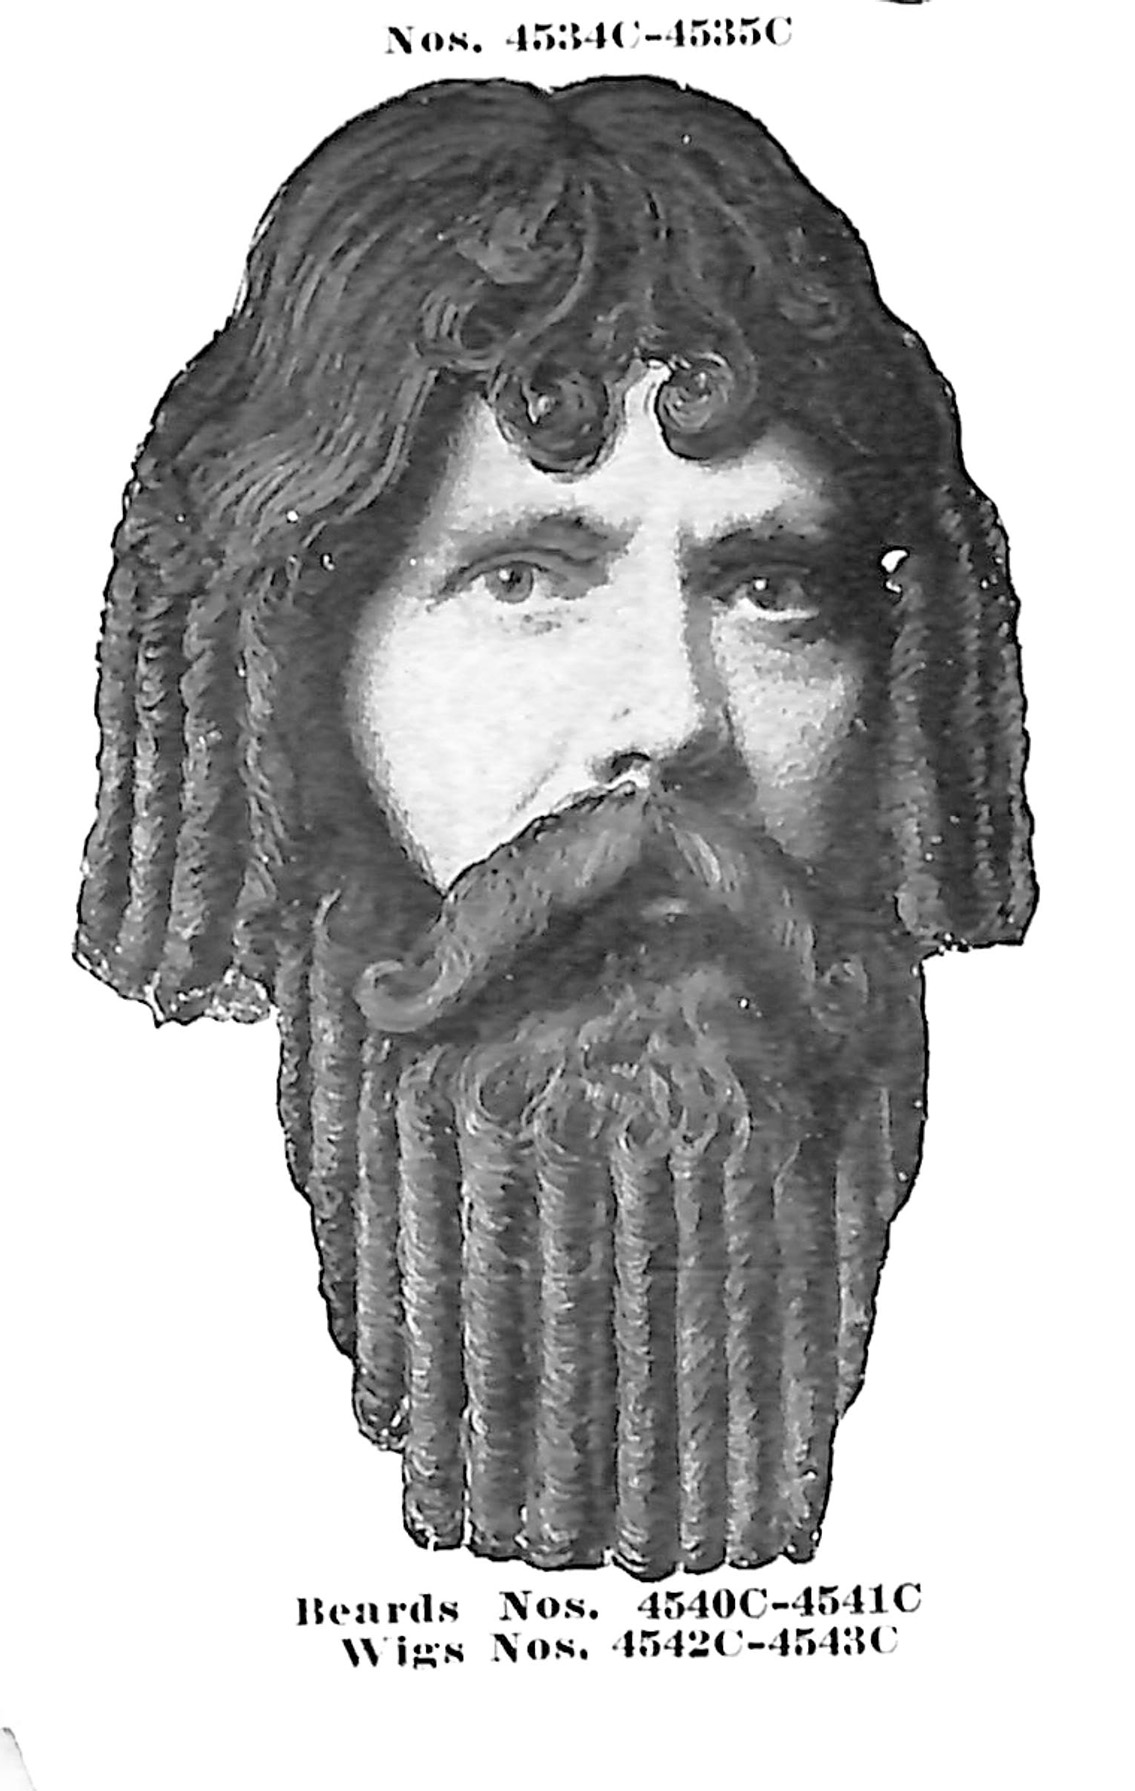 Wig and Beards no. 4540C-4543C